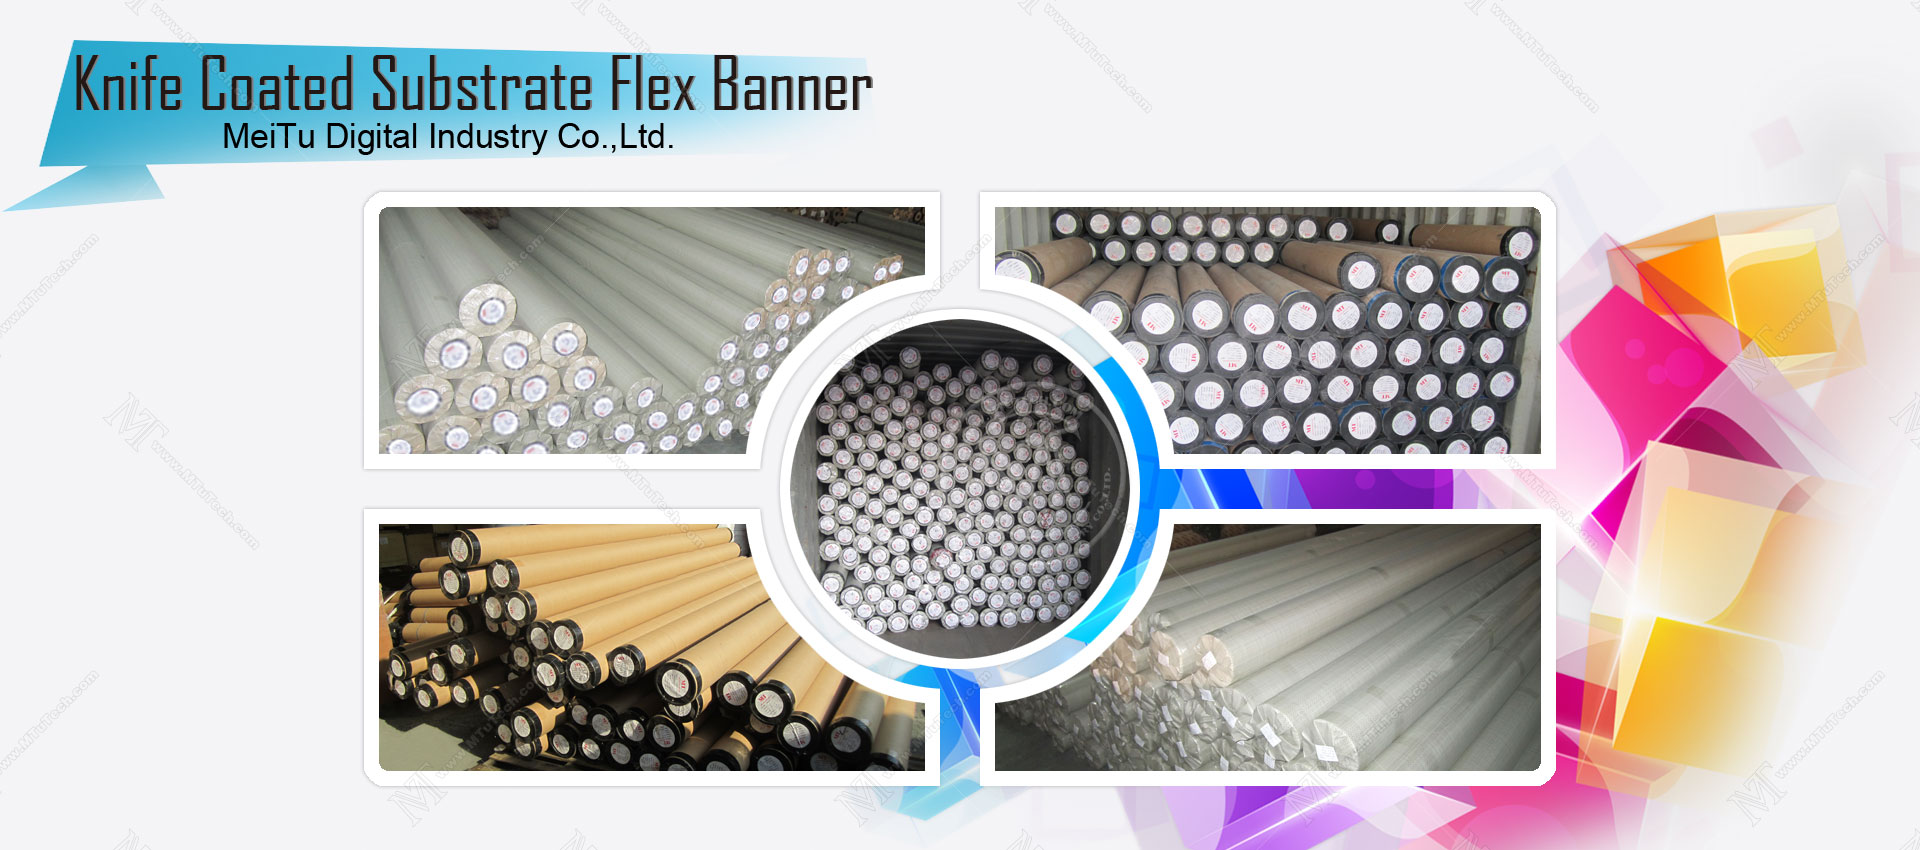 Knife Coated Substrate flex banner